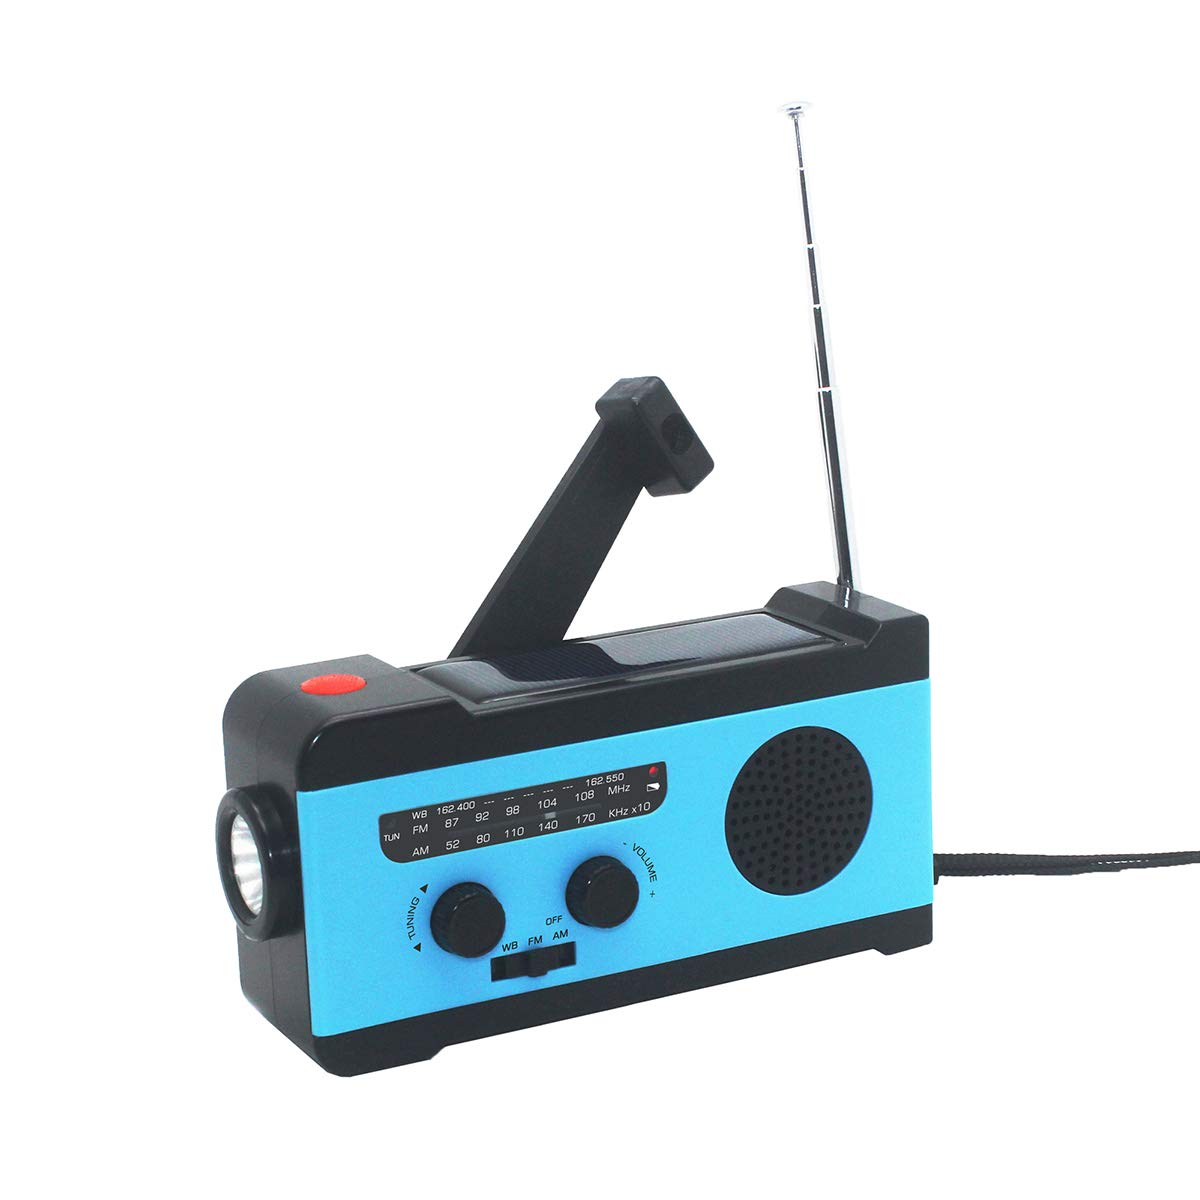 VOSAREA Portable Radio FM Receiver Emergency Radio with Alarm Clock FM Radio FM Receiver by VOSAREA (Image #2)